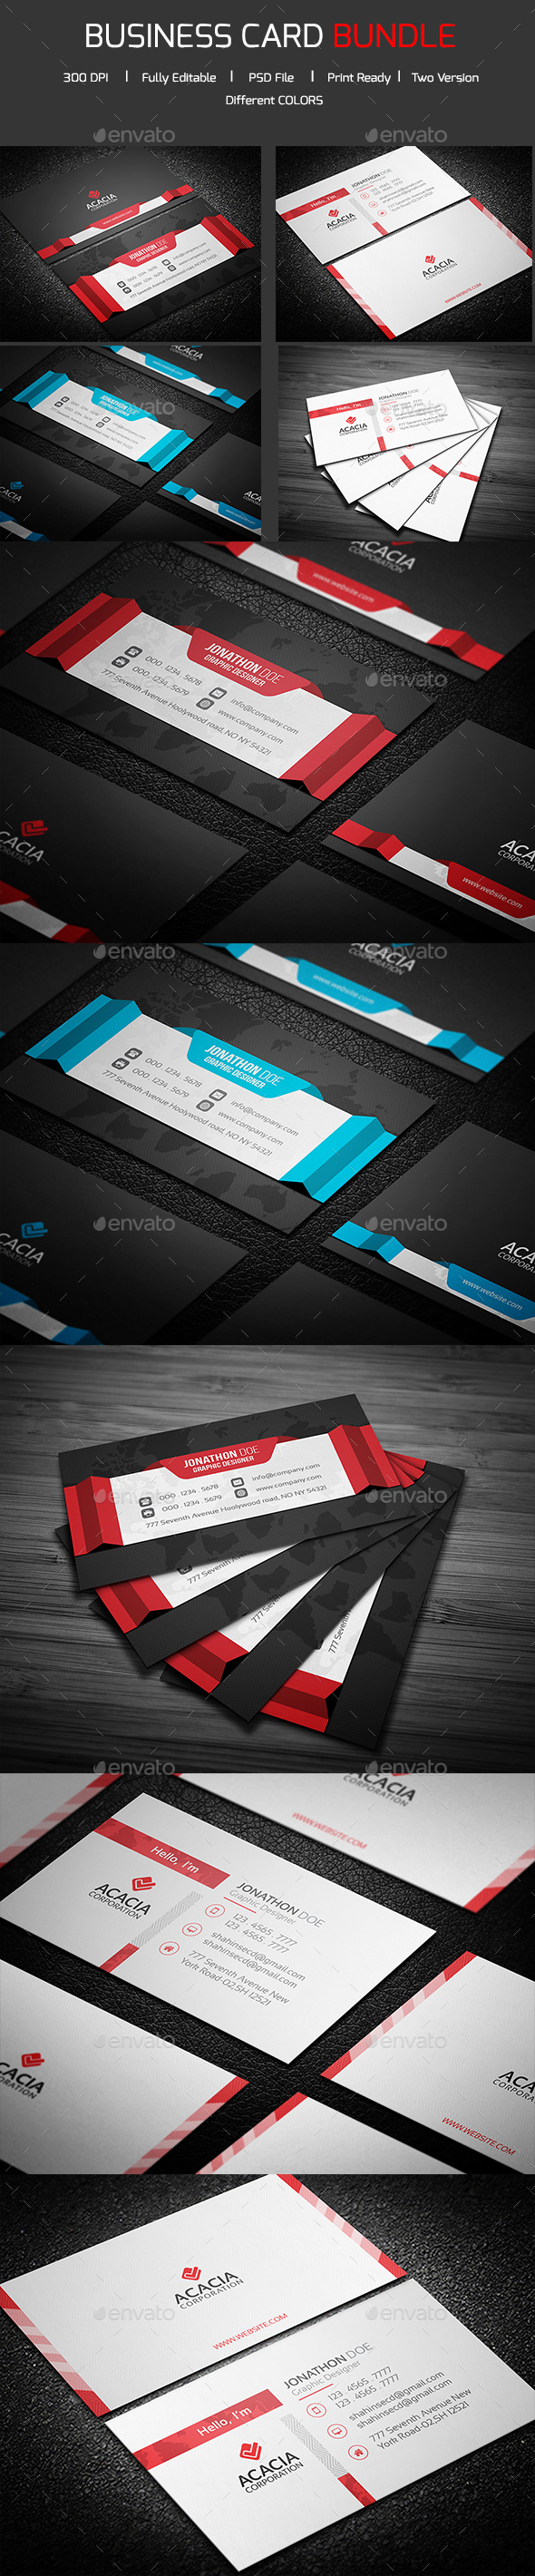 Bundle- 2 in 1 Business Card_09 - Corporate Business Cards